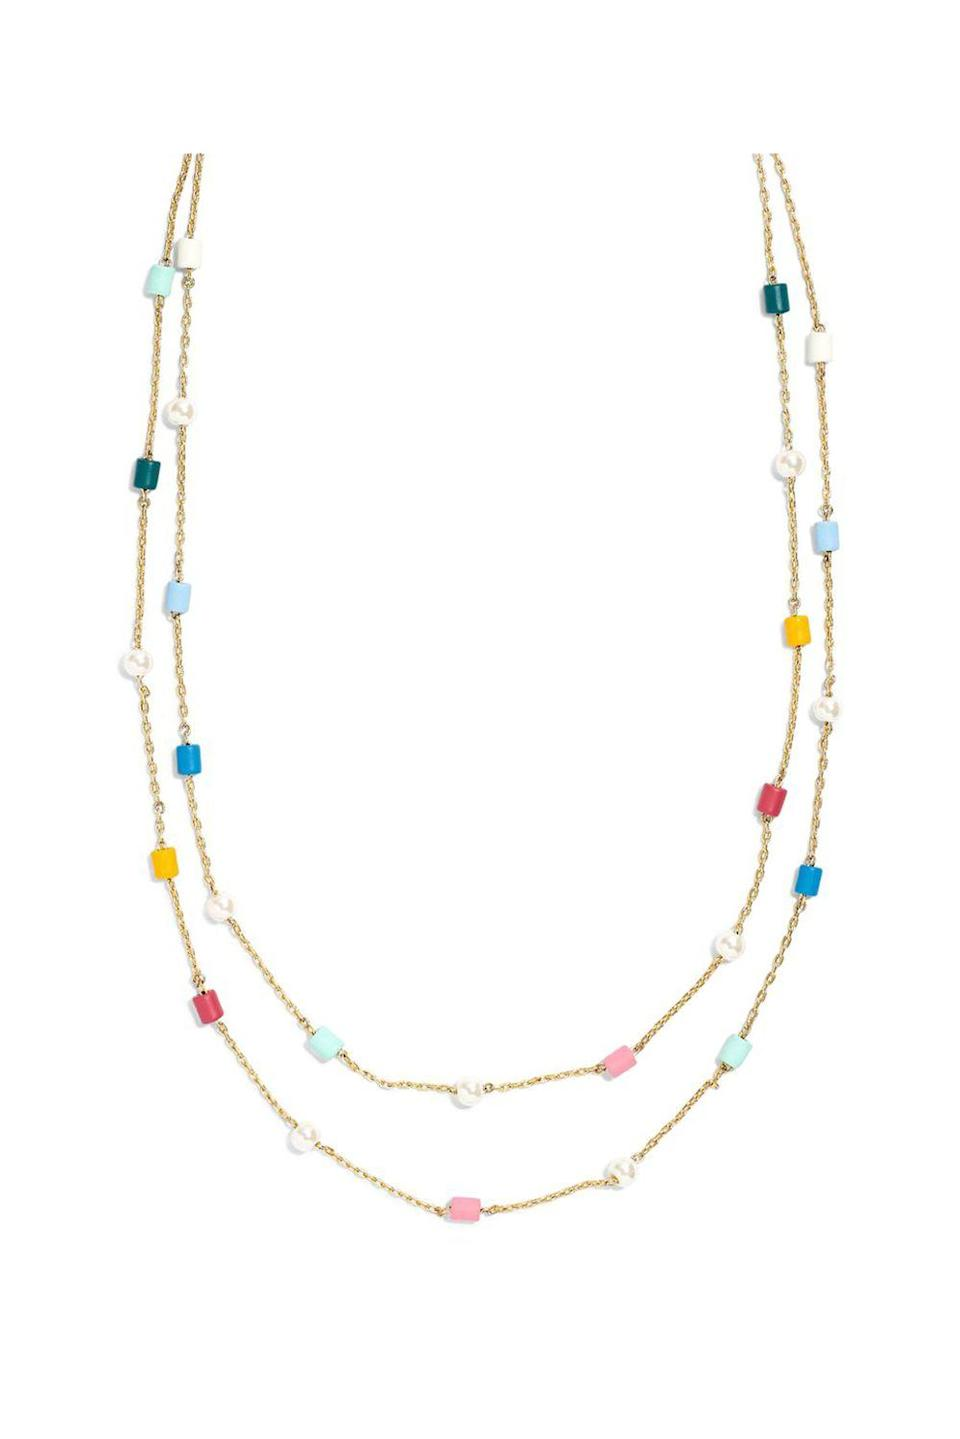 """<p><strong>Madewell</strong></p><p>nordstrom.com</p><p><strong>$38.00</strong></p><p><a href=""""https://shop.nordstrom.com/s/madewell-beaded-imitation-pearl-layered-necklace/5236193"""" rel=""""nofollow noopener"""" target=""""_blank"""" data-ylk=""""slk:SHOP IT"""" class=""""link rapid-noclick-resp"""">SHOP IT</a></p><p>Madewell is beloved for its amazing jeans and basics, but I especially love their jewelry, which can be seriously underrated. Case and point: this necklace. The two-strand design gives you the layered look in an instant and the multicolored beading will make it super easy to pair with the other necklaces and chokers already in your collection.<br></p>"""